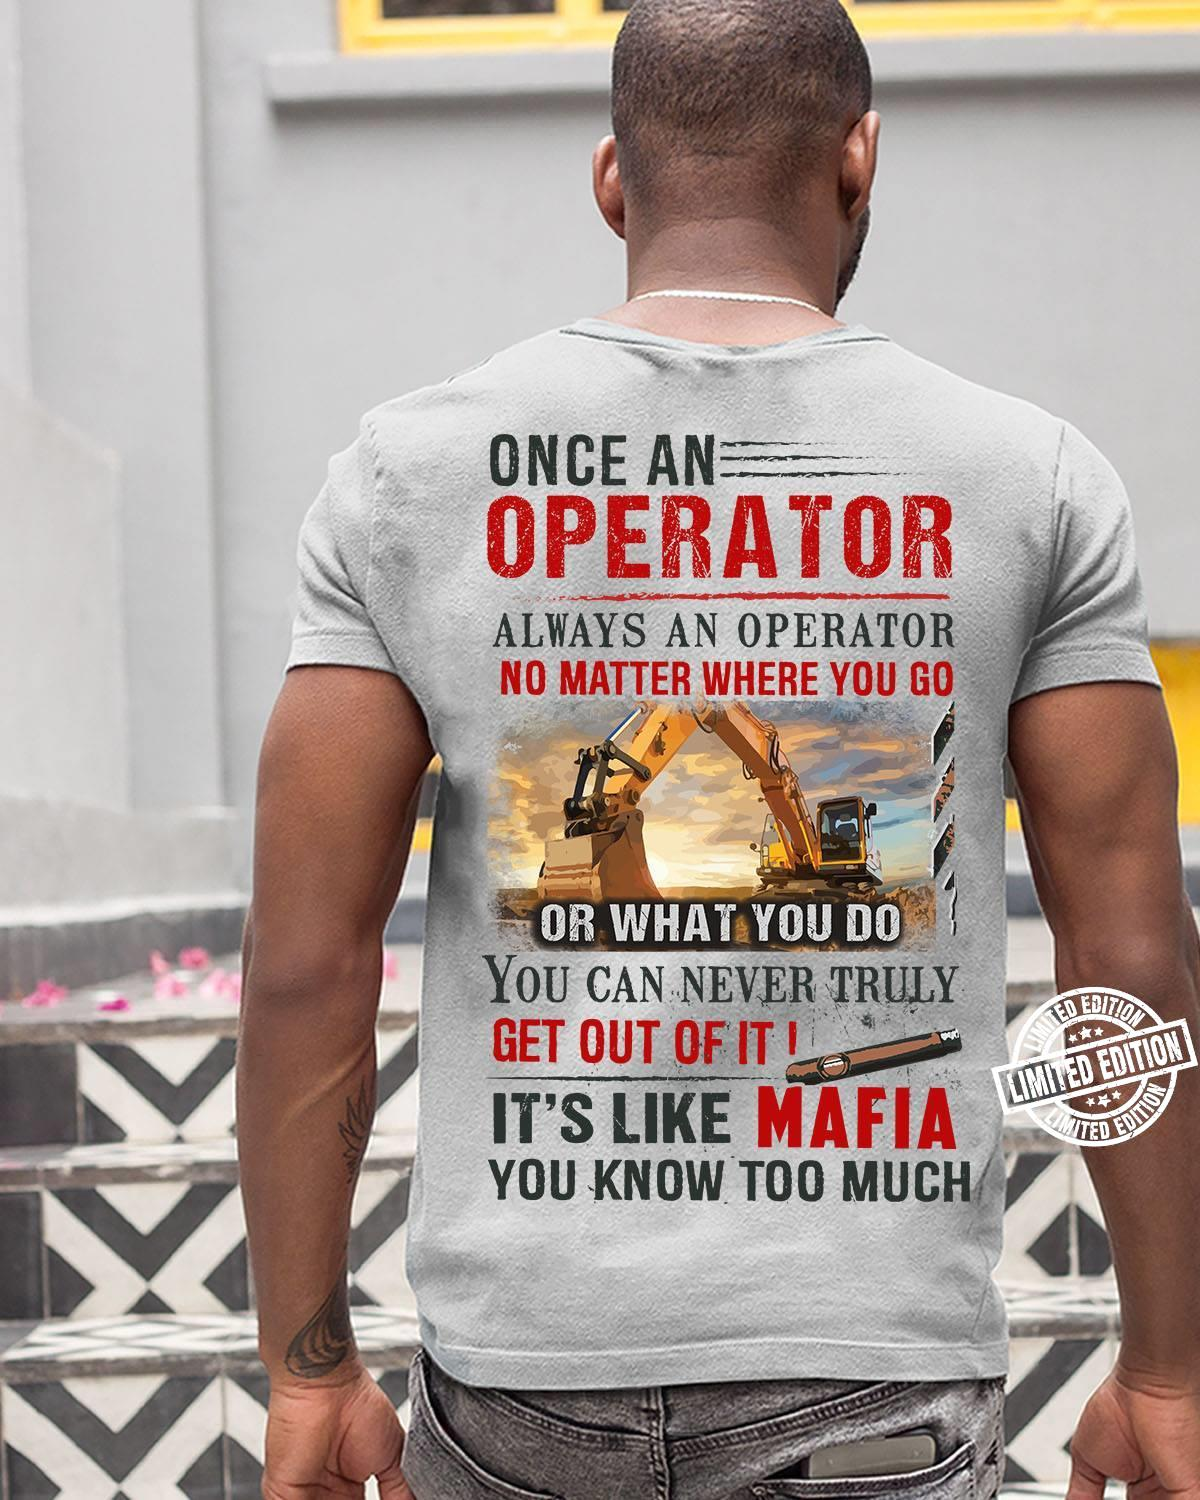 Once an operator always an operator no matter where you go or that you do you can never truly get out of it shirt